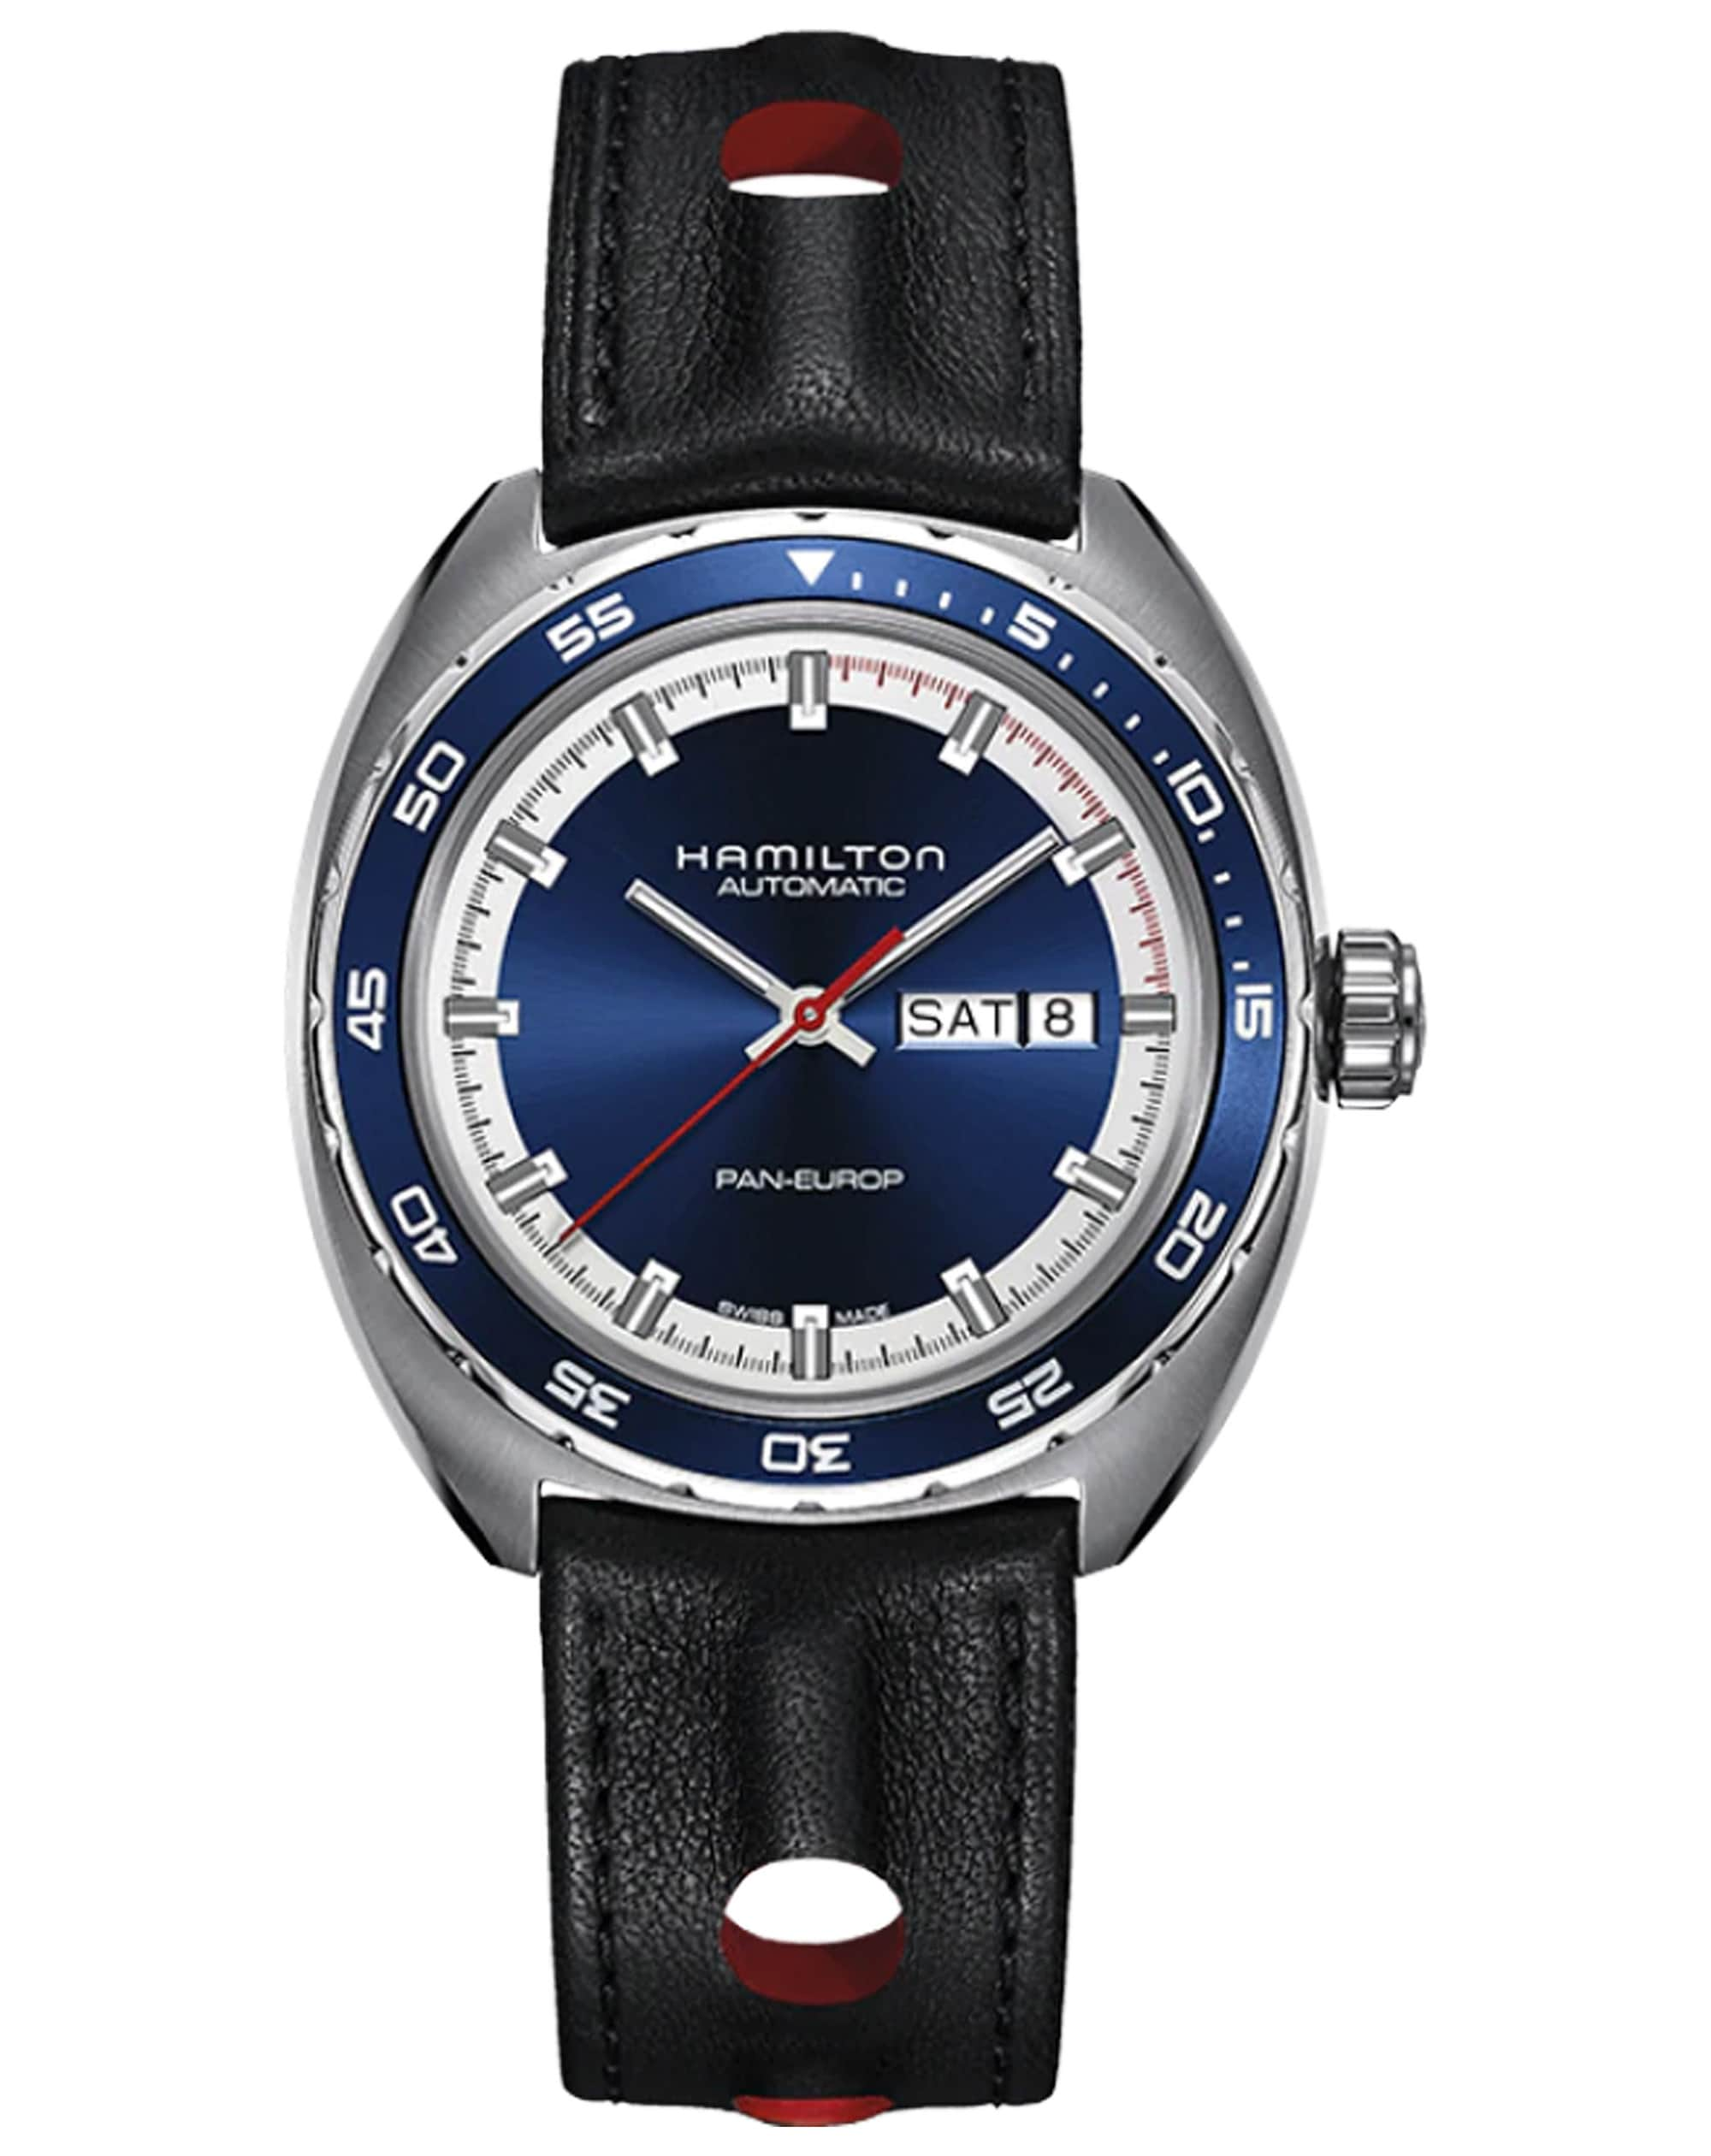 Hamilton American Classic Pan Europ Day Date Auto Watch H35405741 Front View